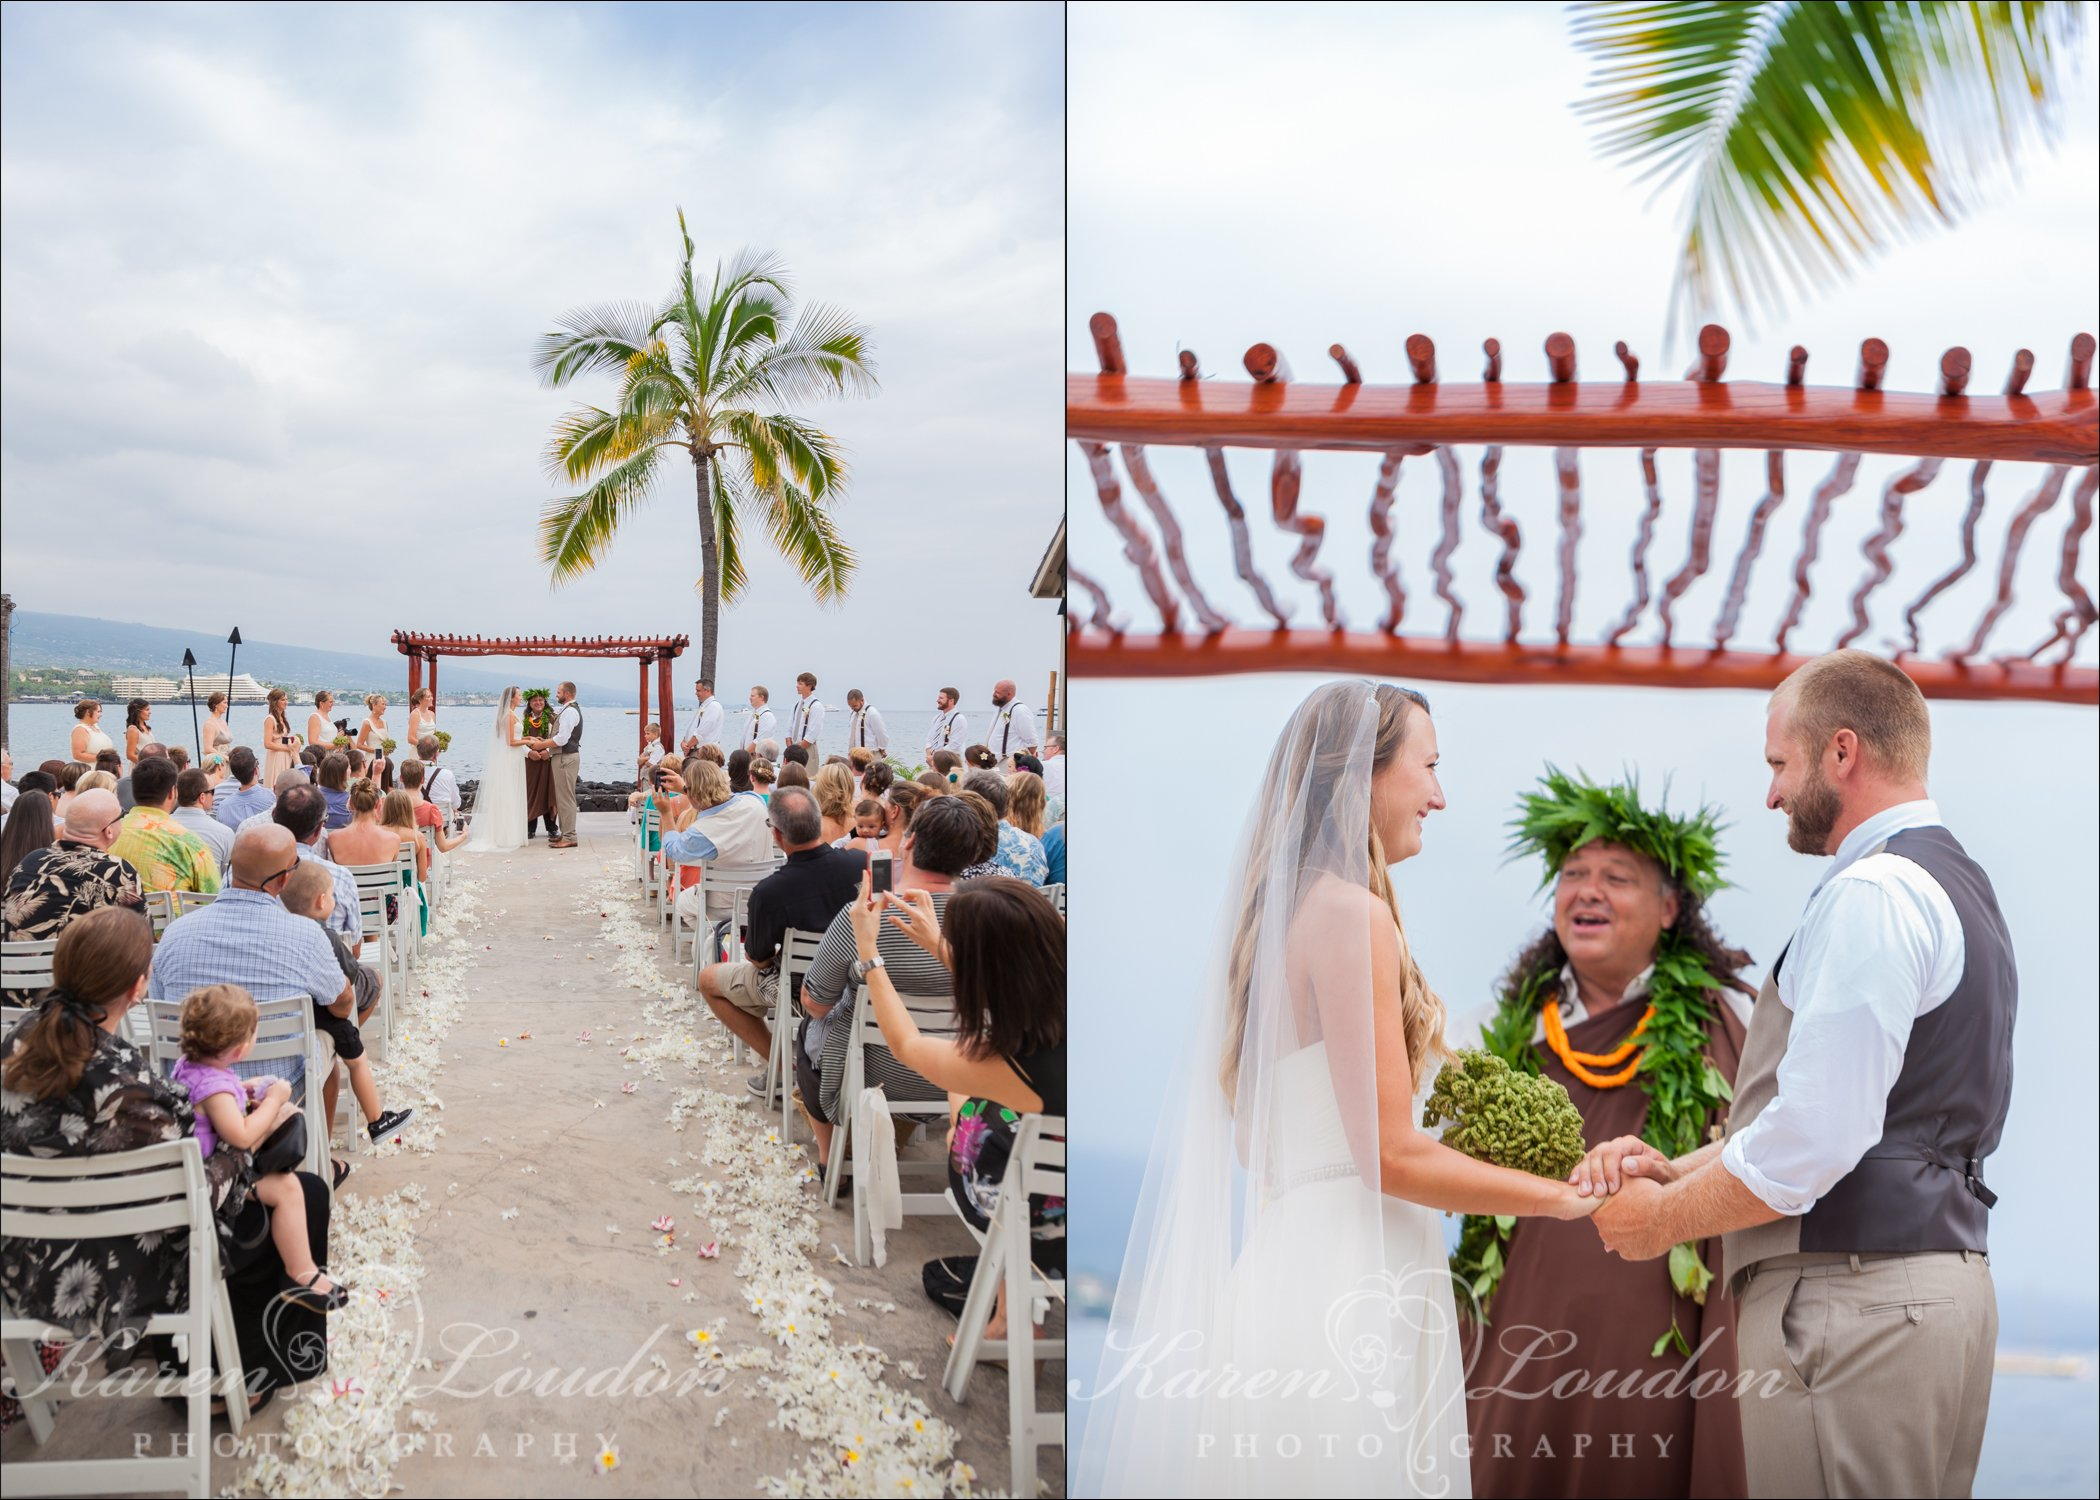 Kona wedding organizer